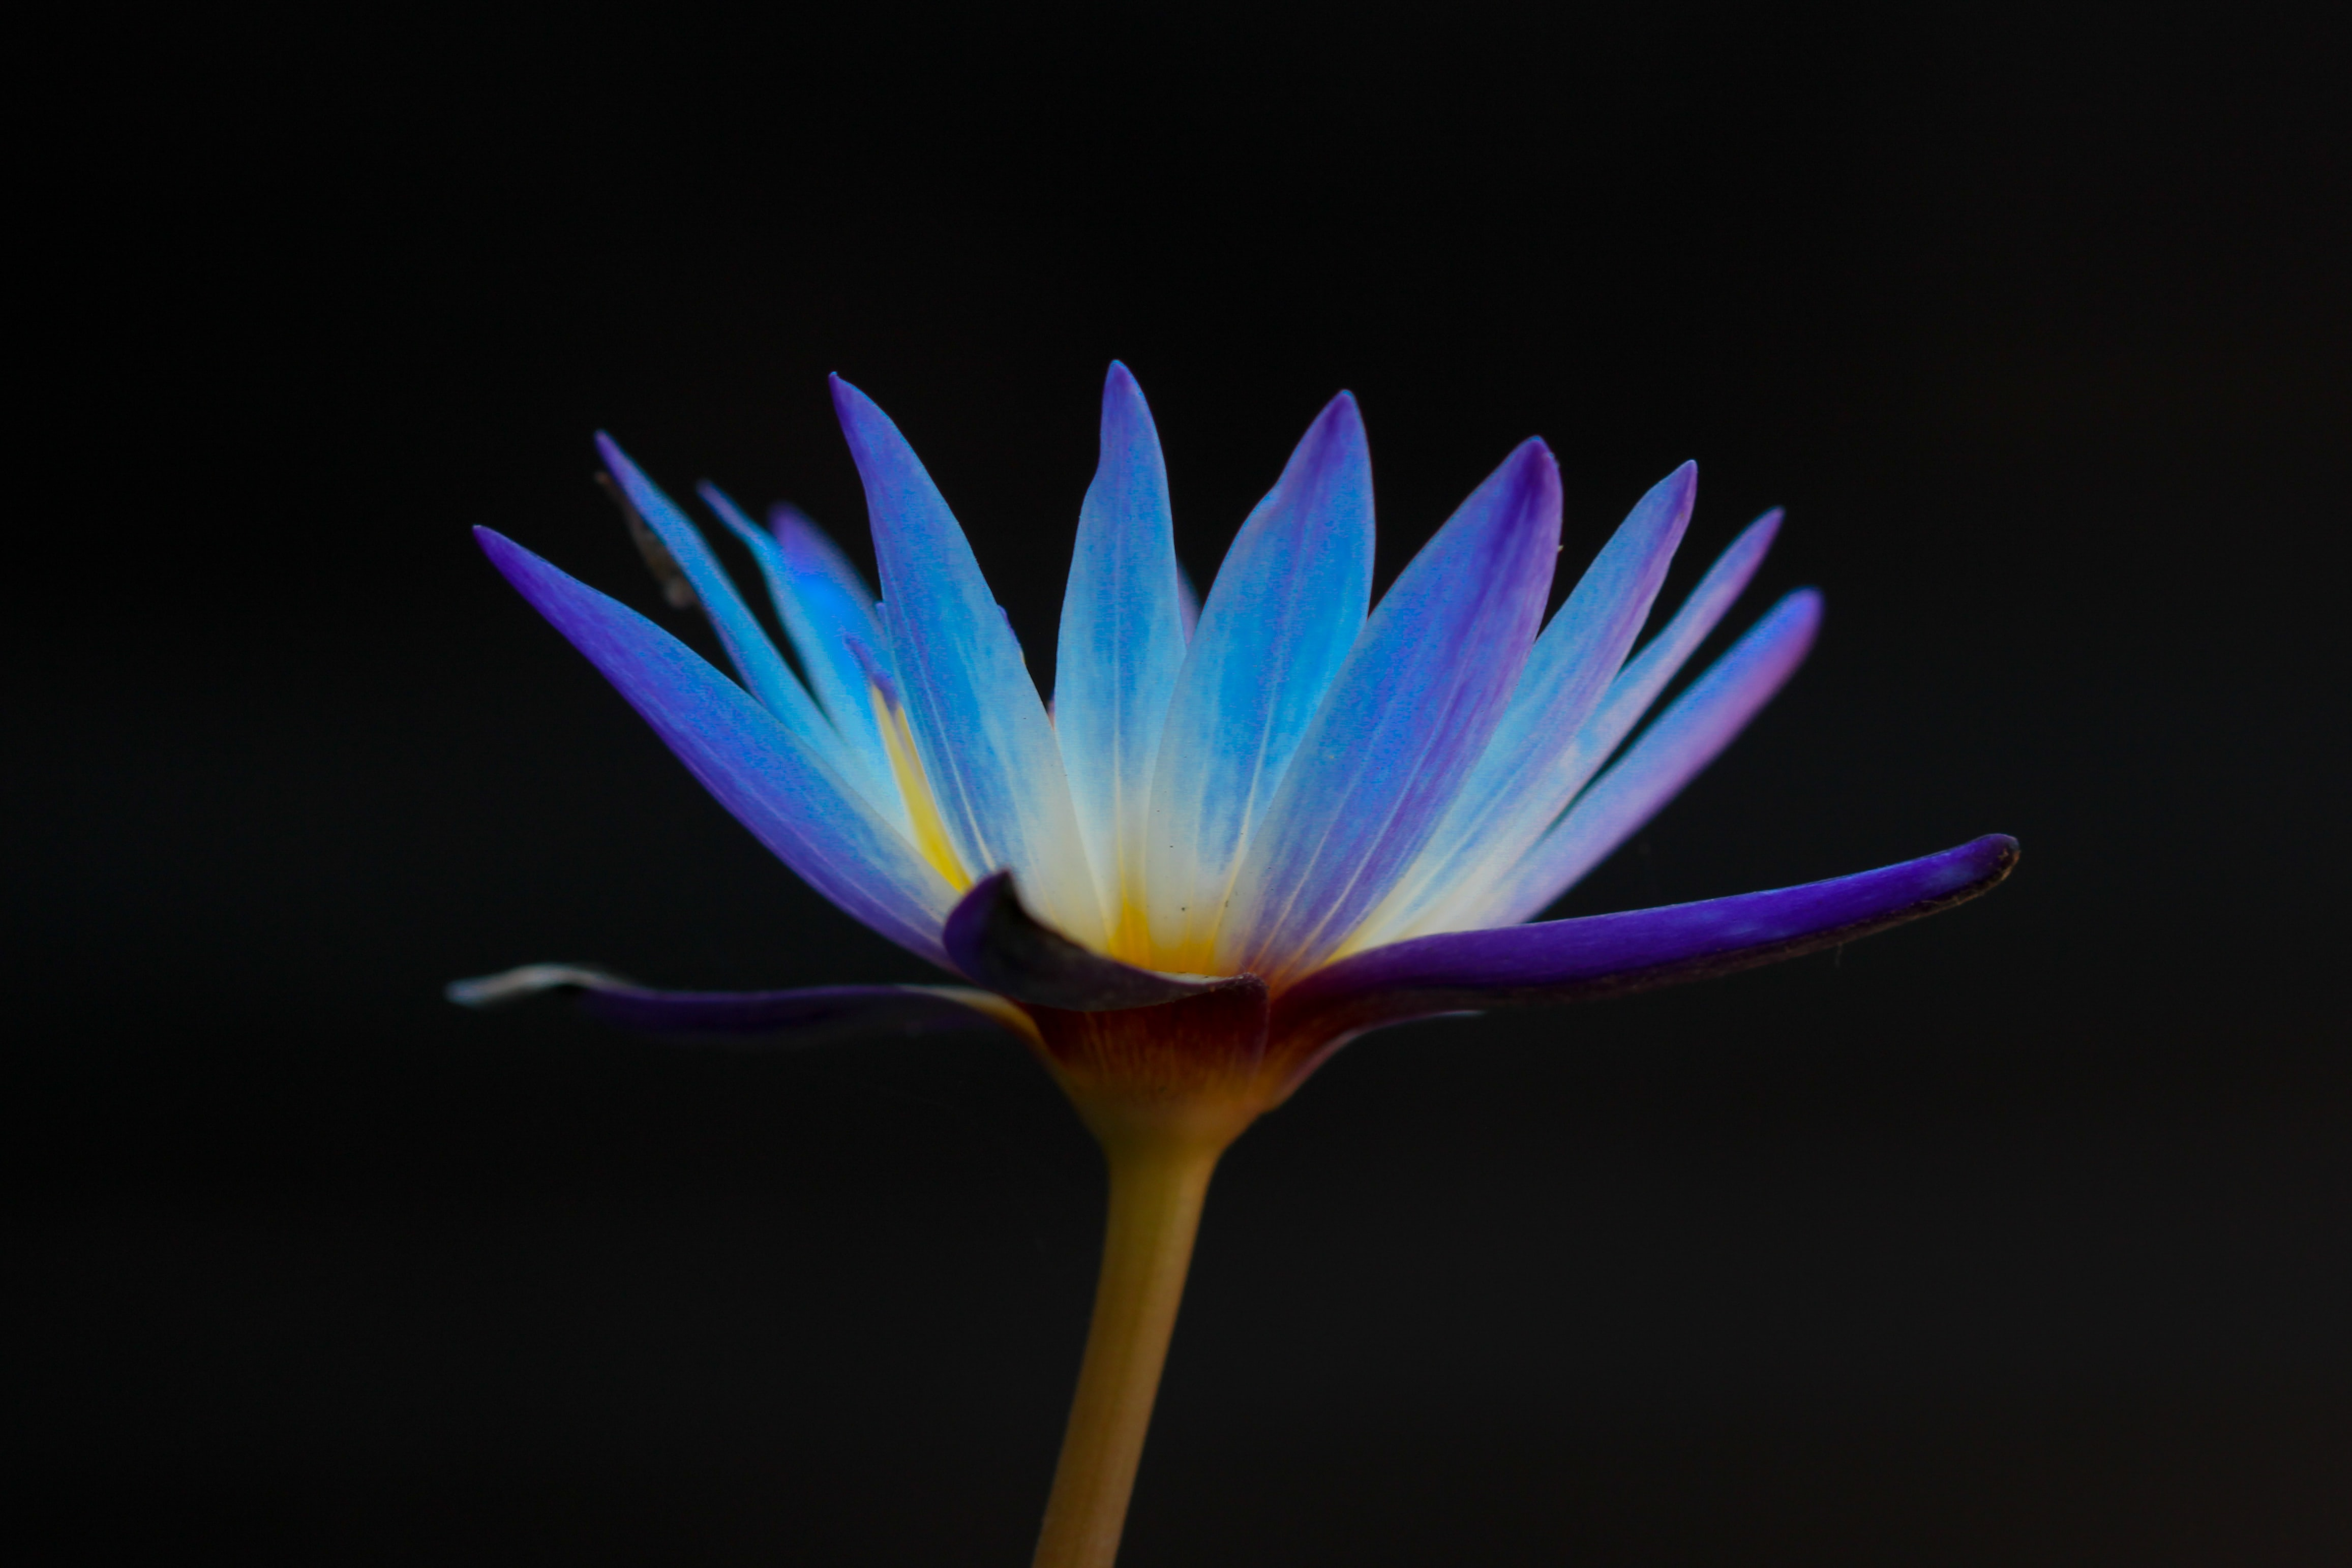 A low-angle shot of a violet daisy against a black background